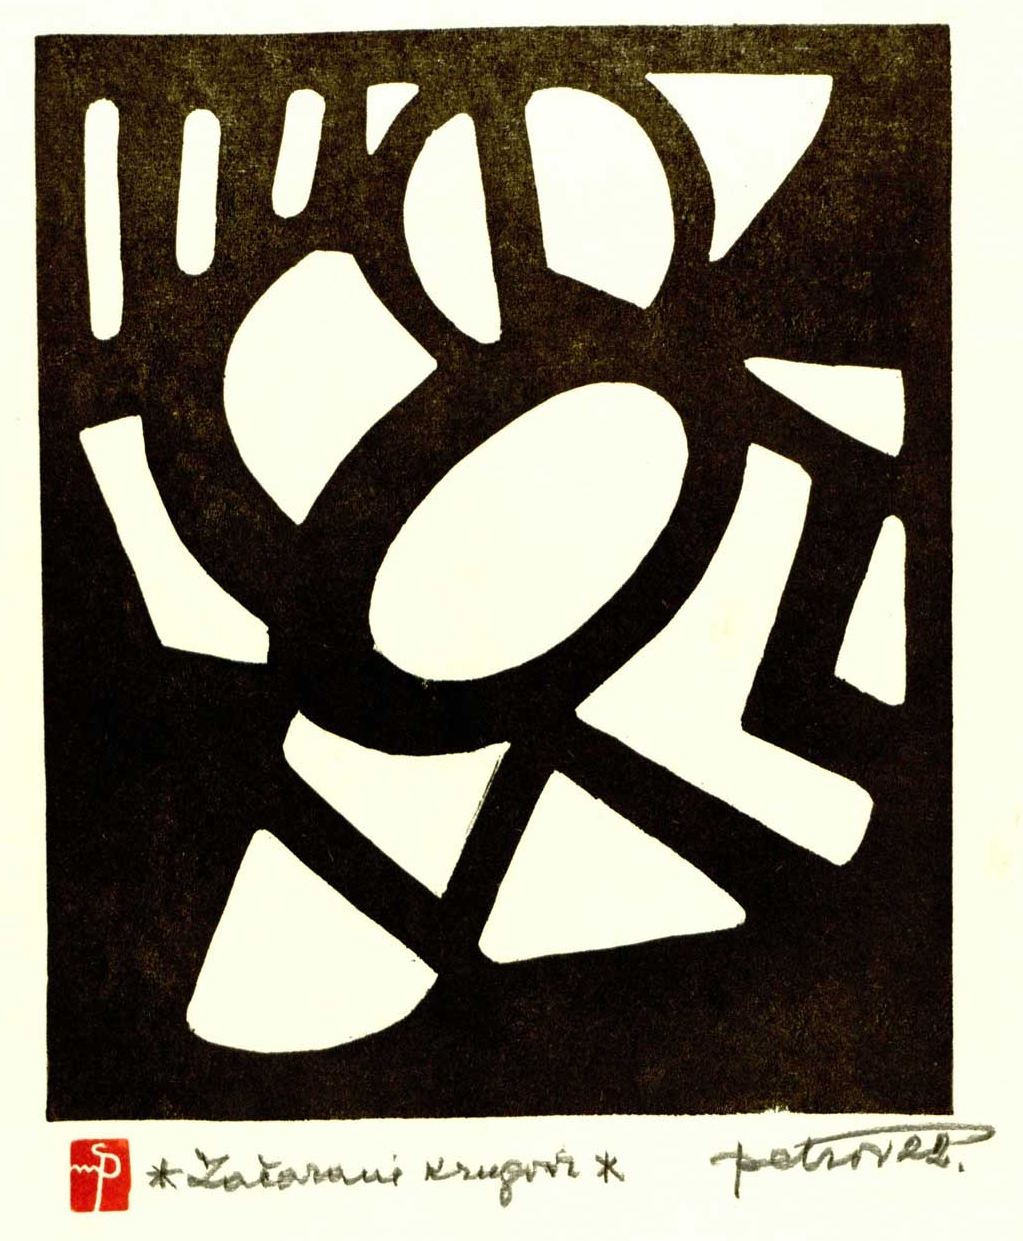 Serbian abstract black and white linocut print